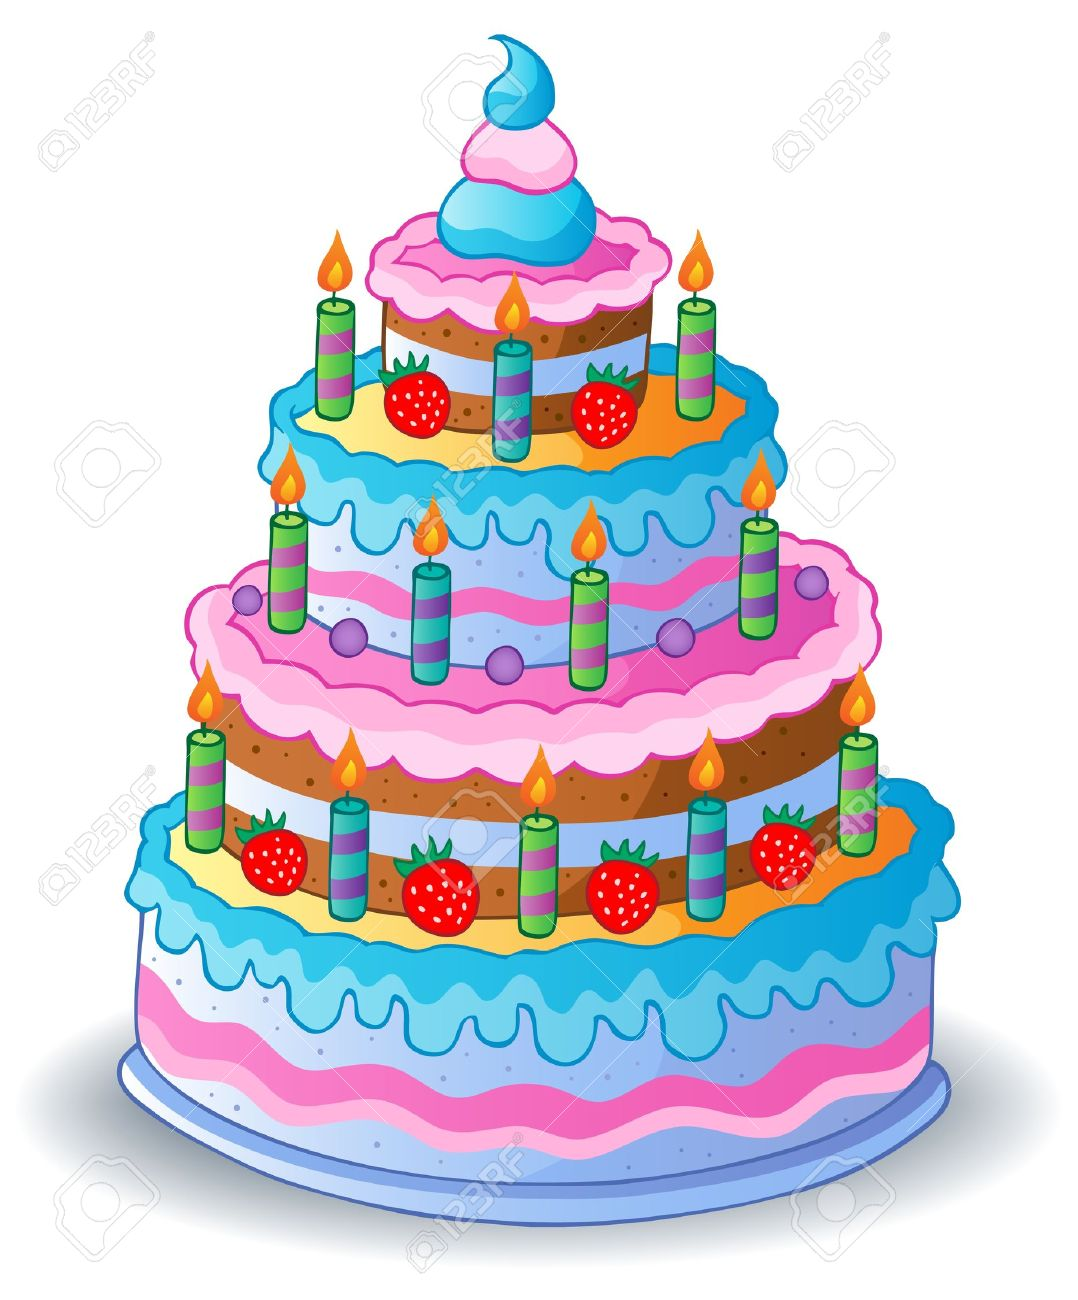 Decorated Birthday Cakes Decorated Birthday Cake 1 Vector Illustration Royalty Free